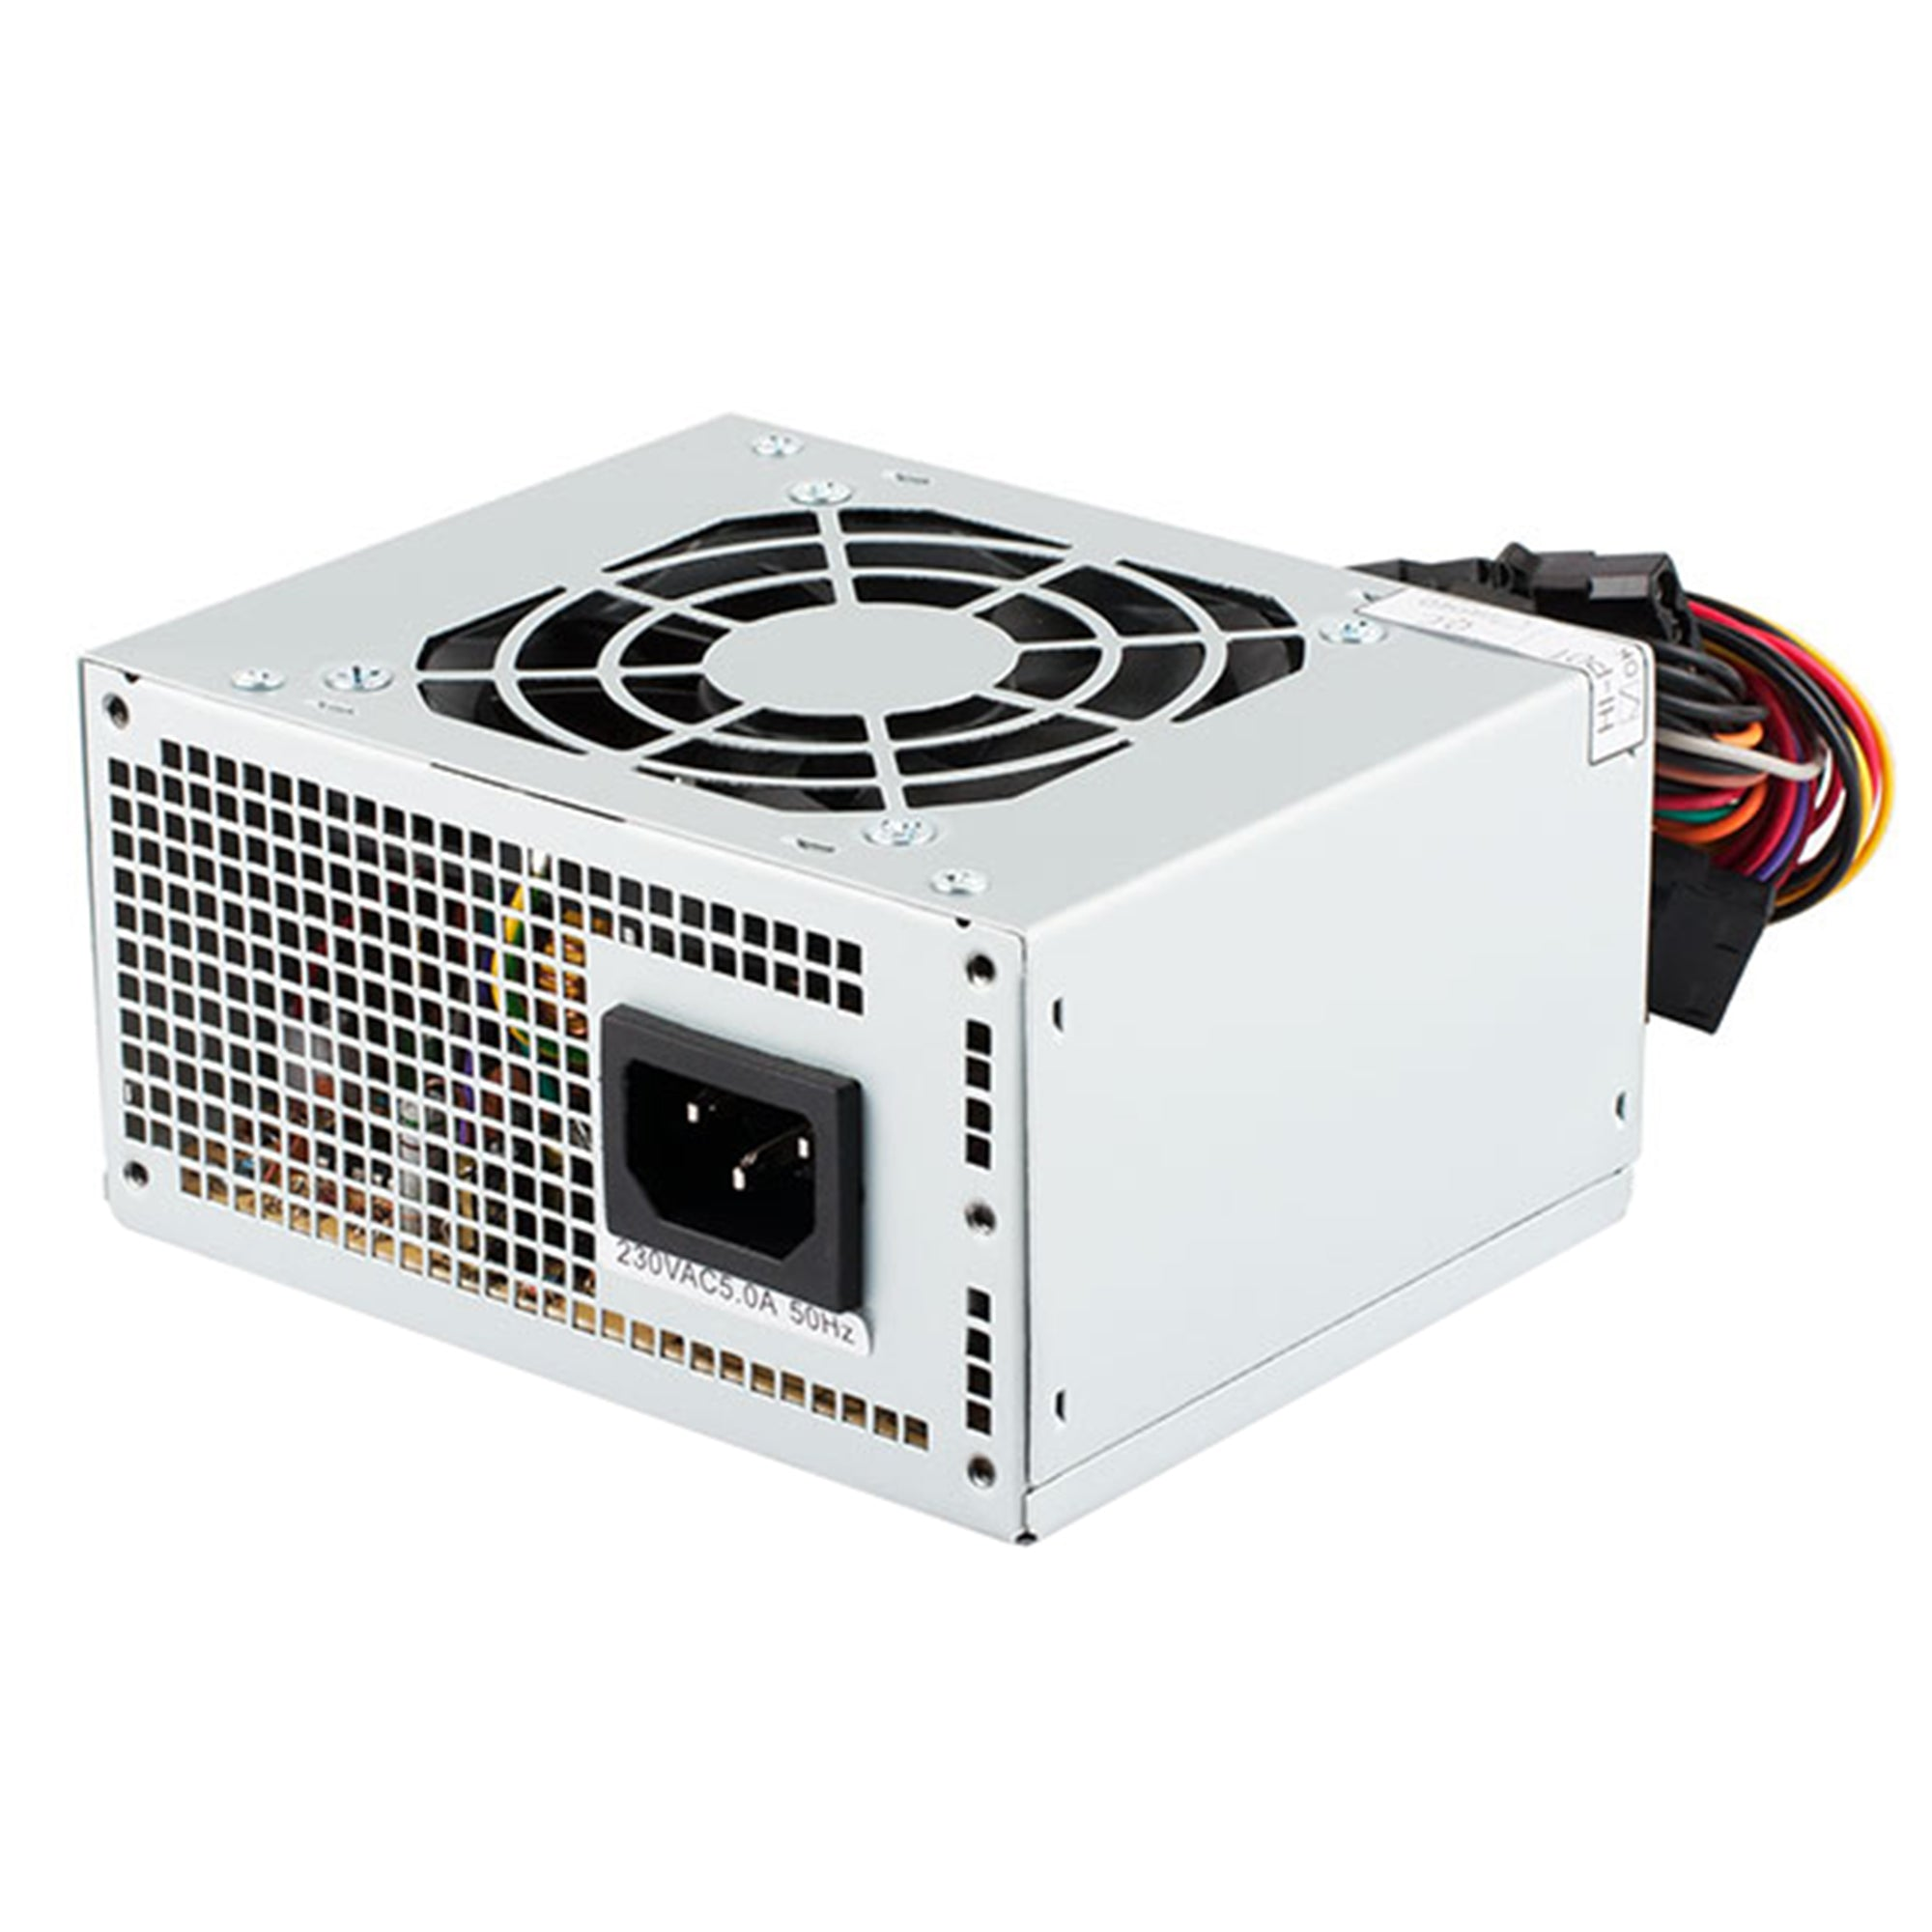 250W Watt Power Supply Unit